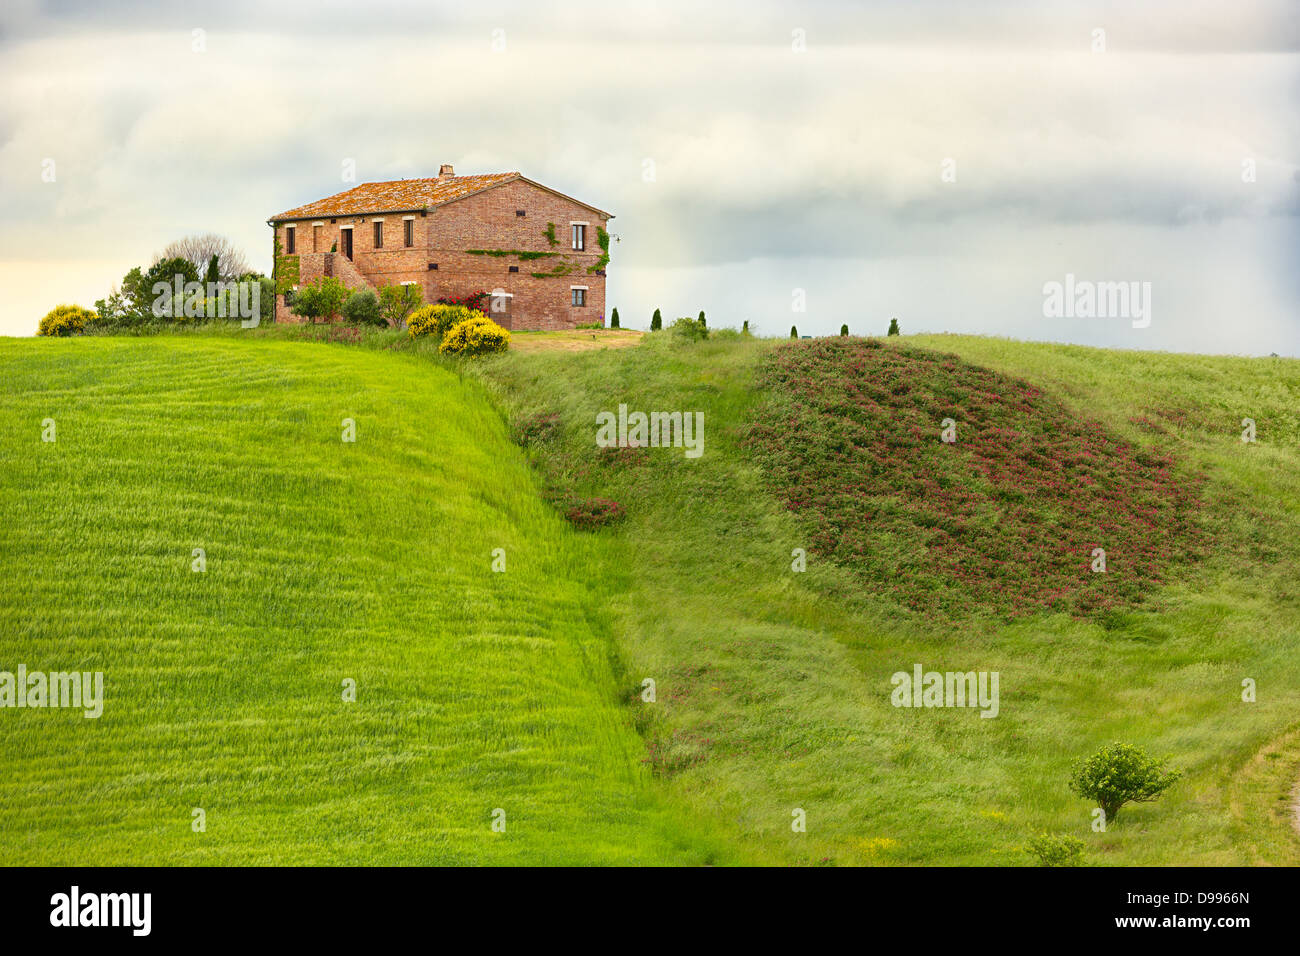 Tuscany farmhouse with fields and flowers, Val d'Orcia, Italy Stock Photo